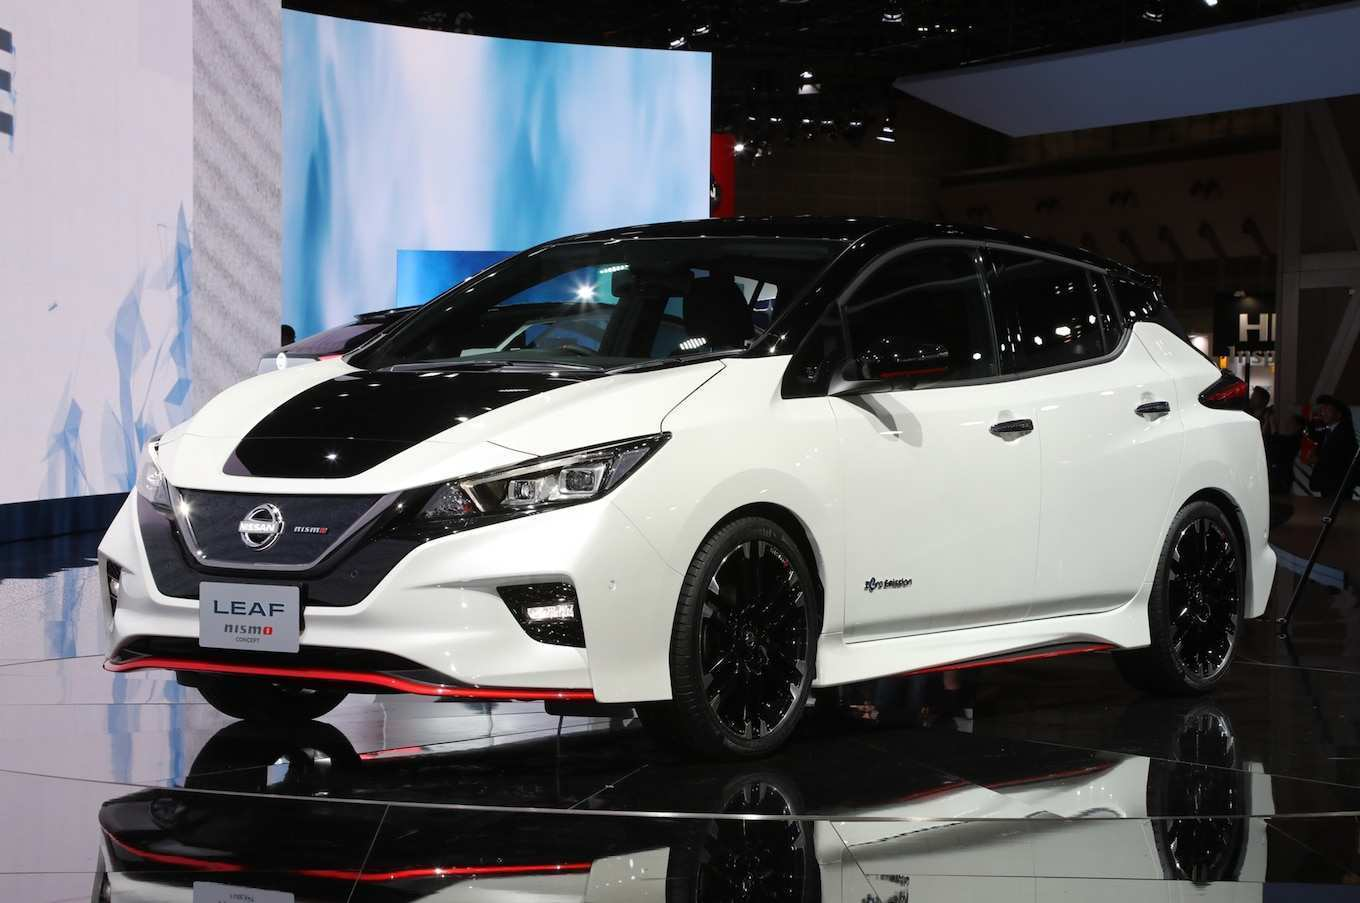 70 Gallery of Nissan Leaf Nismo 2019 Performance And New Engine Pricing for Nissan Leaf Nismo 2019 Performance And New Engine